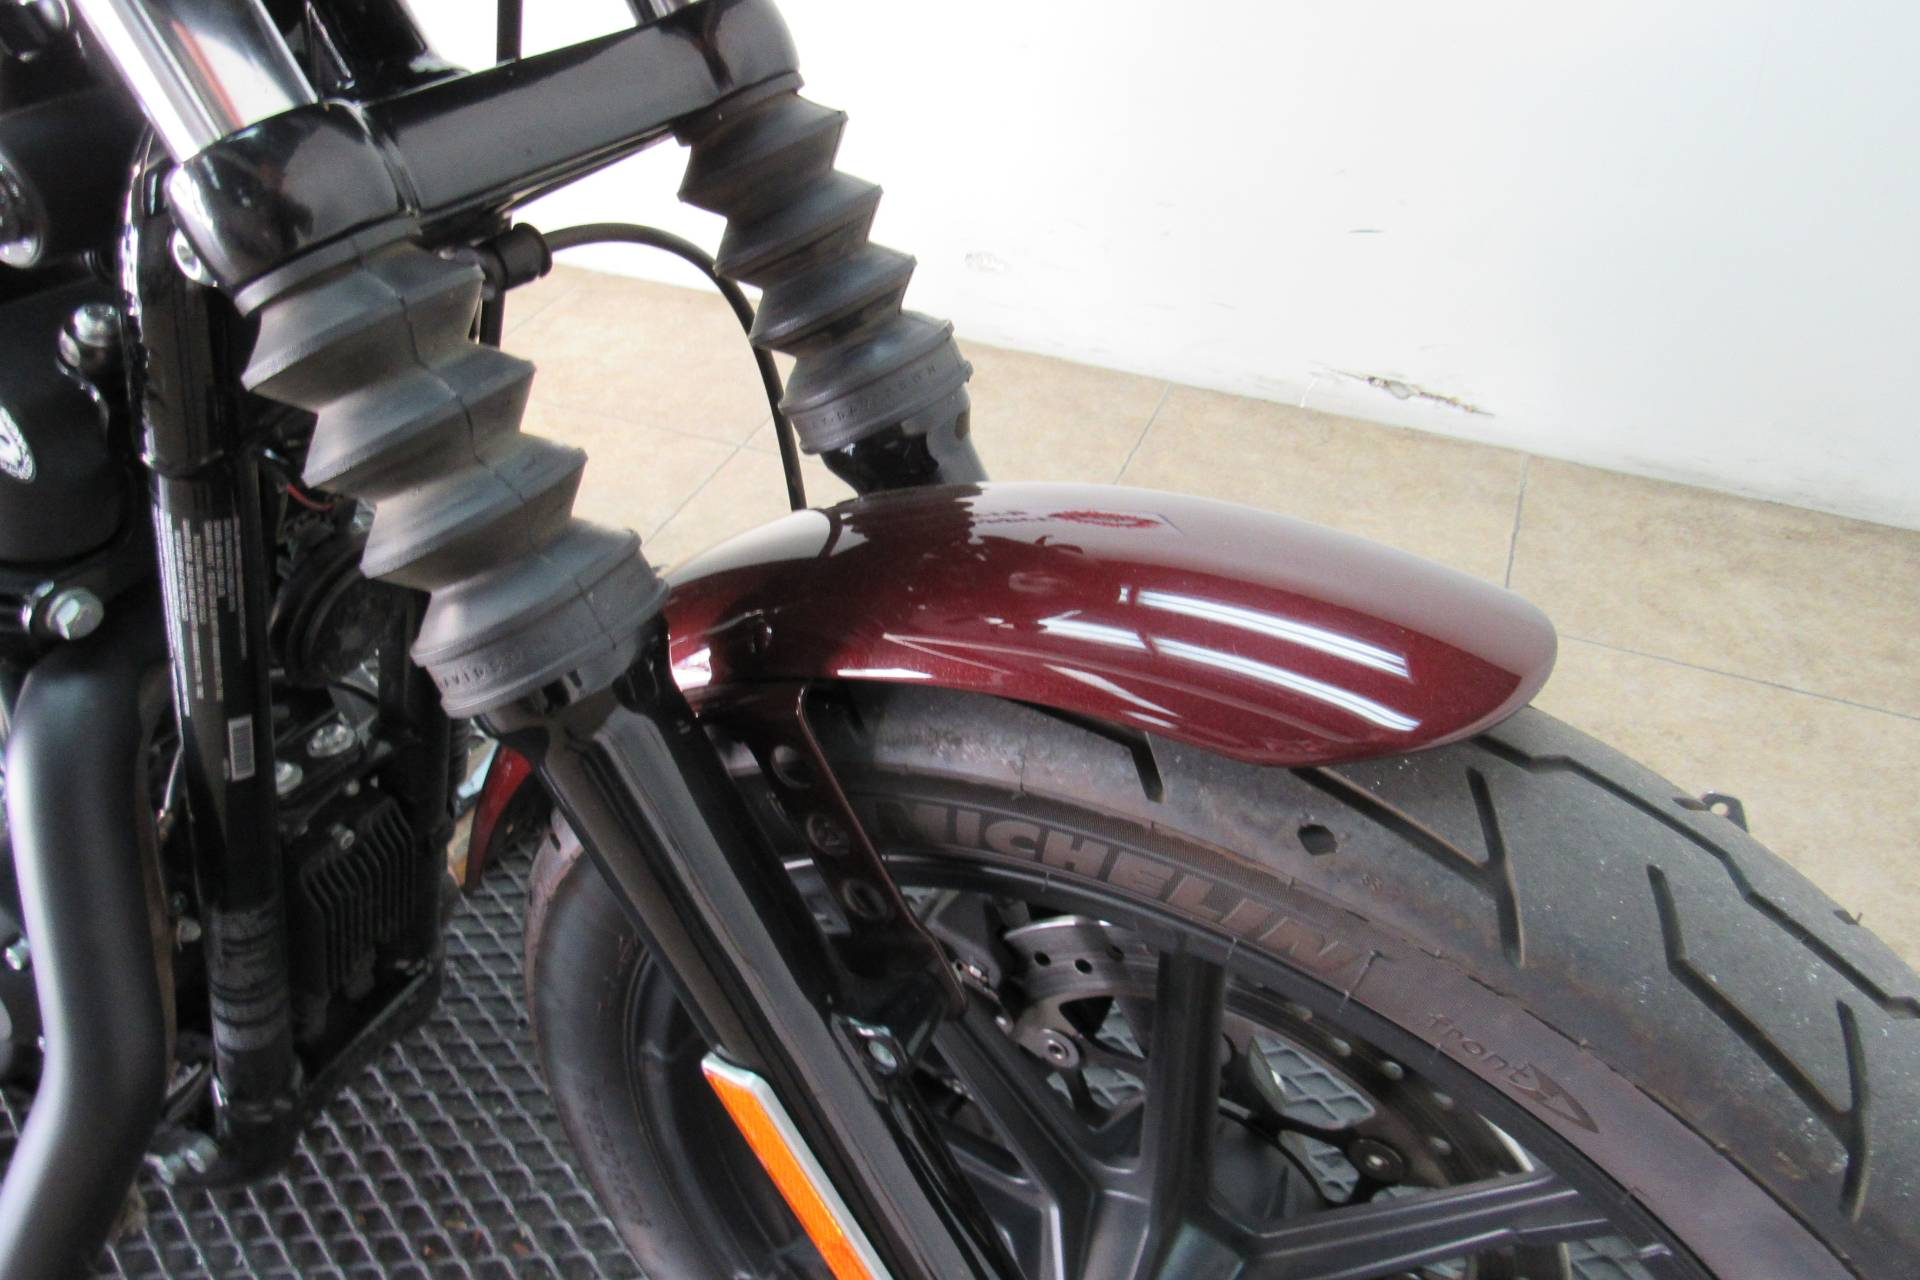 2019 Harley-Davidson IRON 1200 in Temecula, California - Photo 13